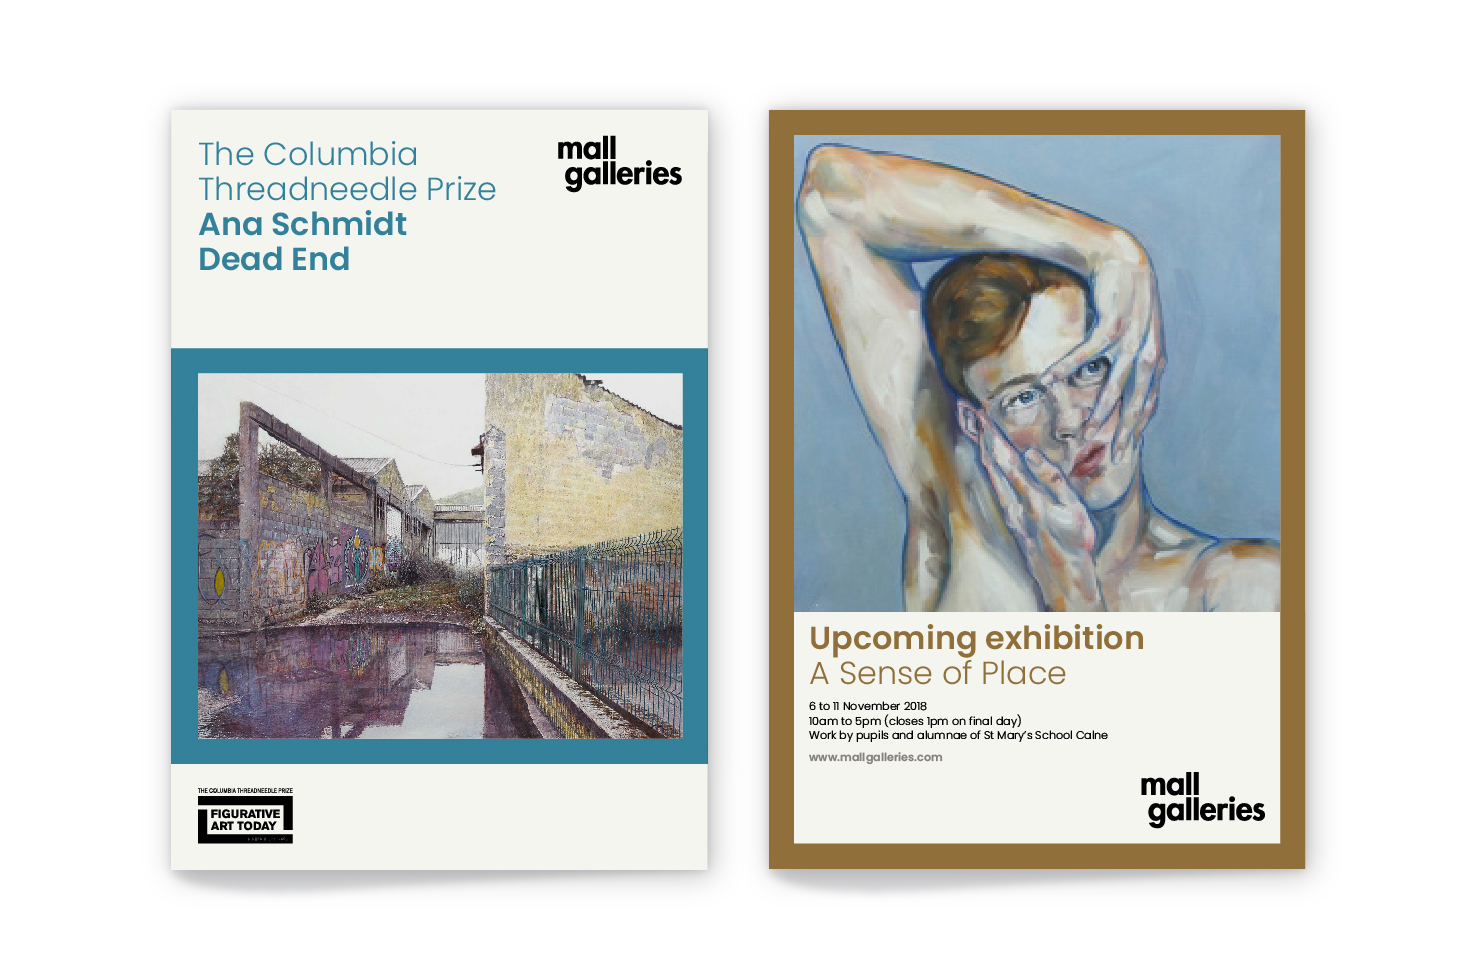 Mall Galleries poster and advert